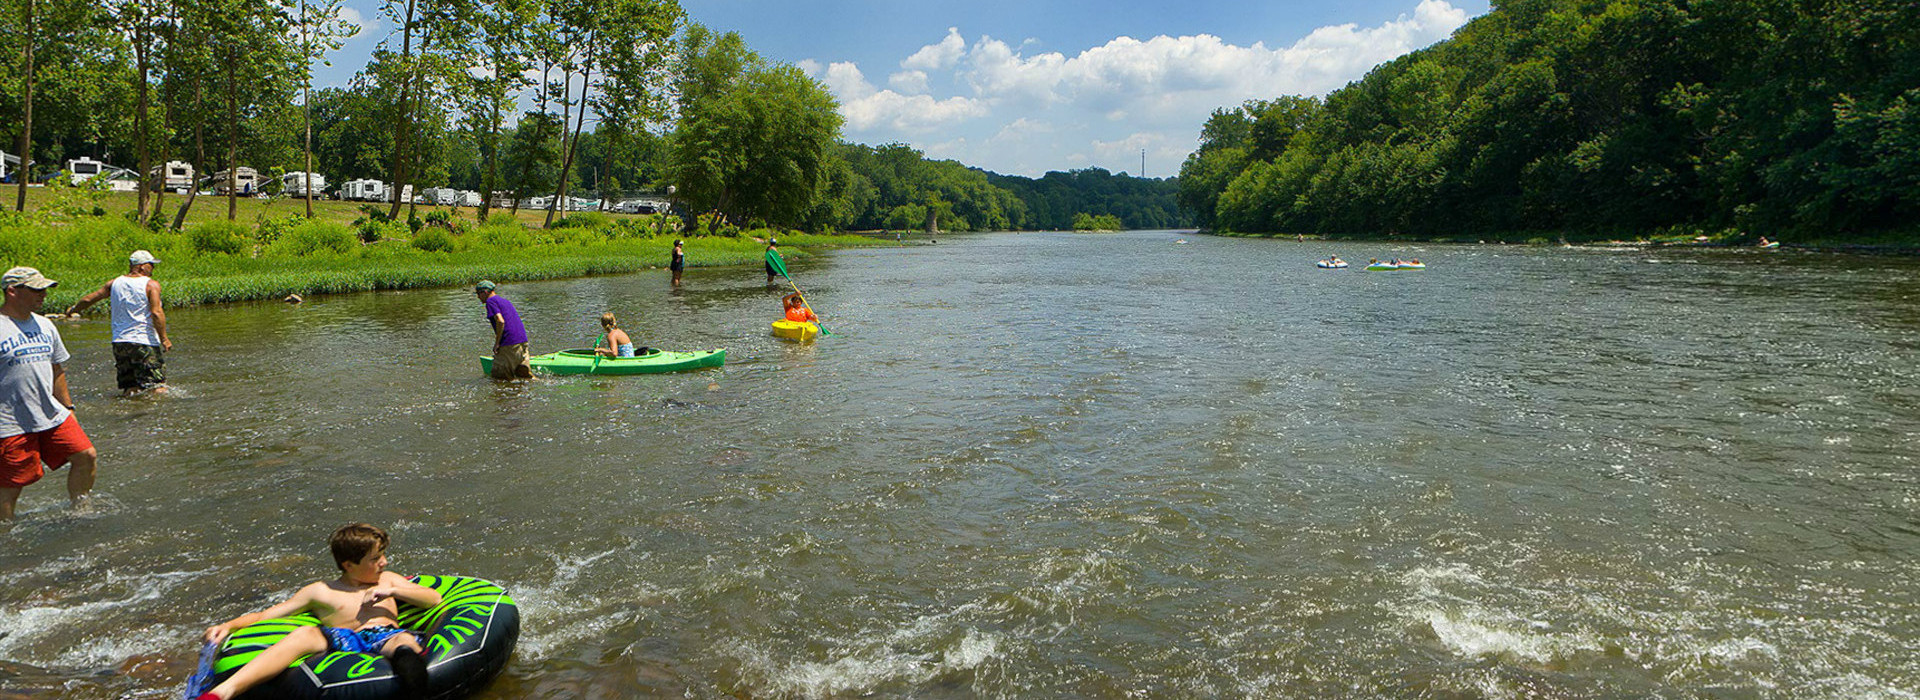 Juniata River Adventures Await!